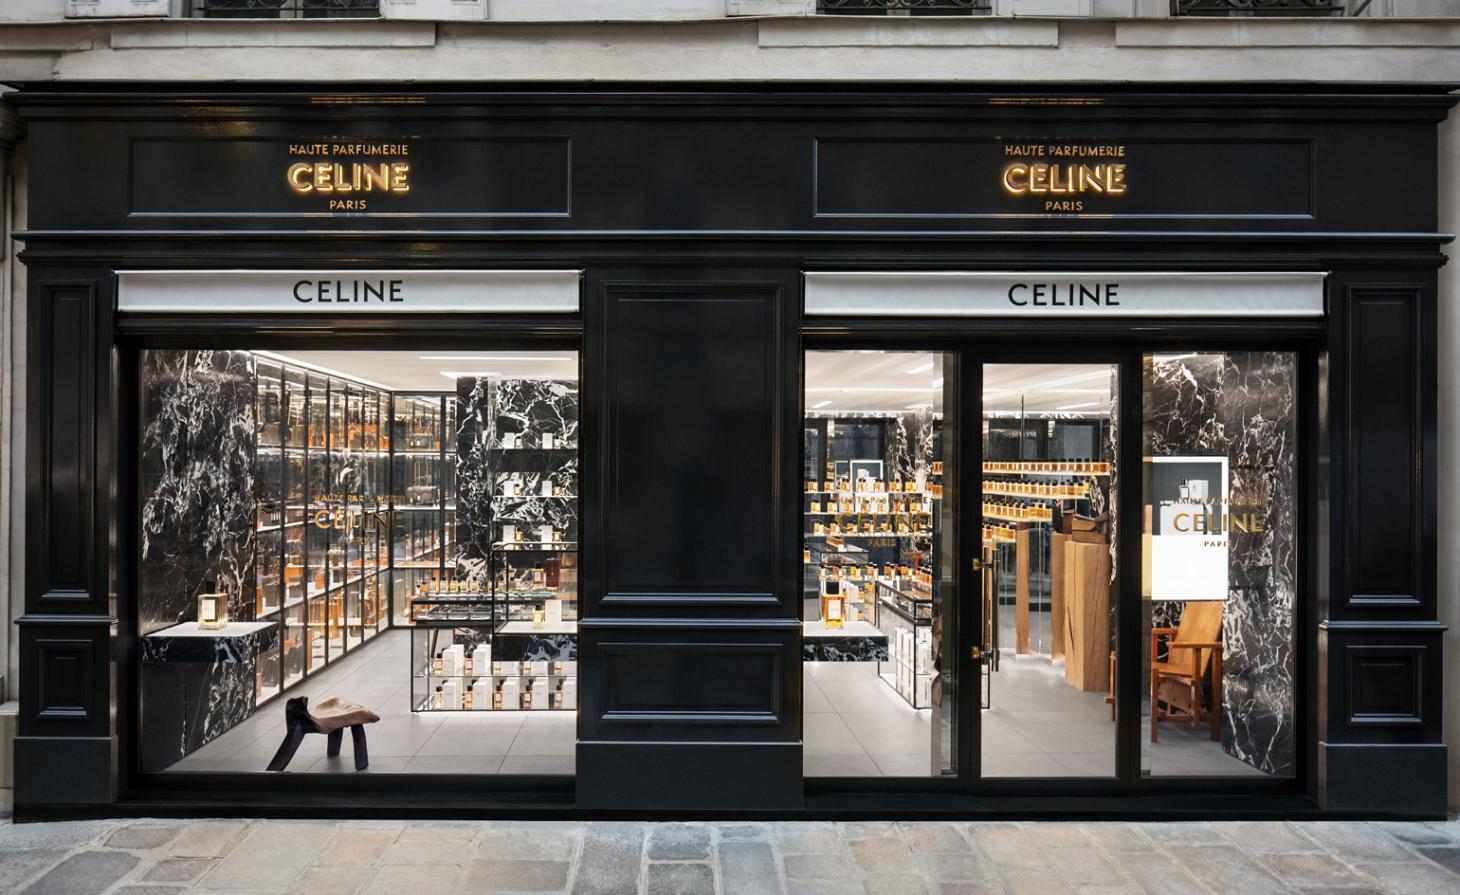 Celine fragrance store in Paris